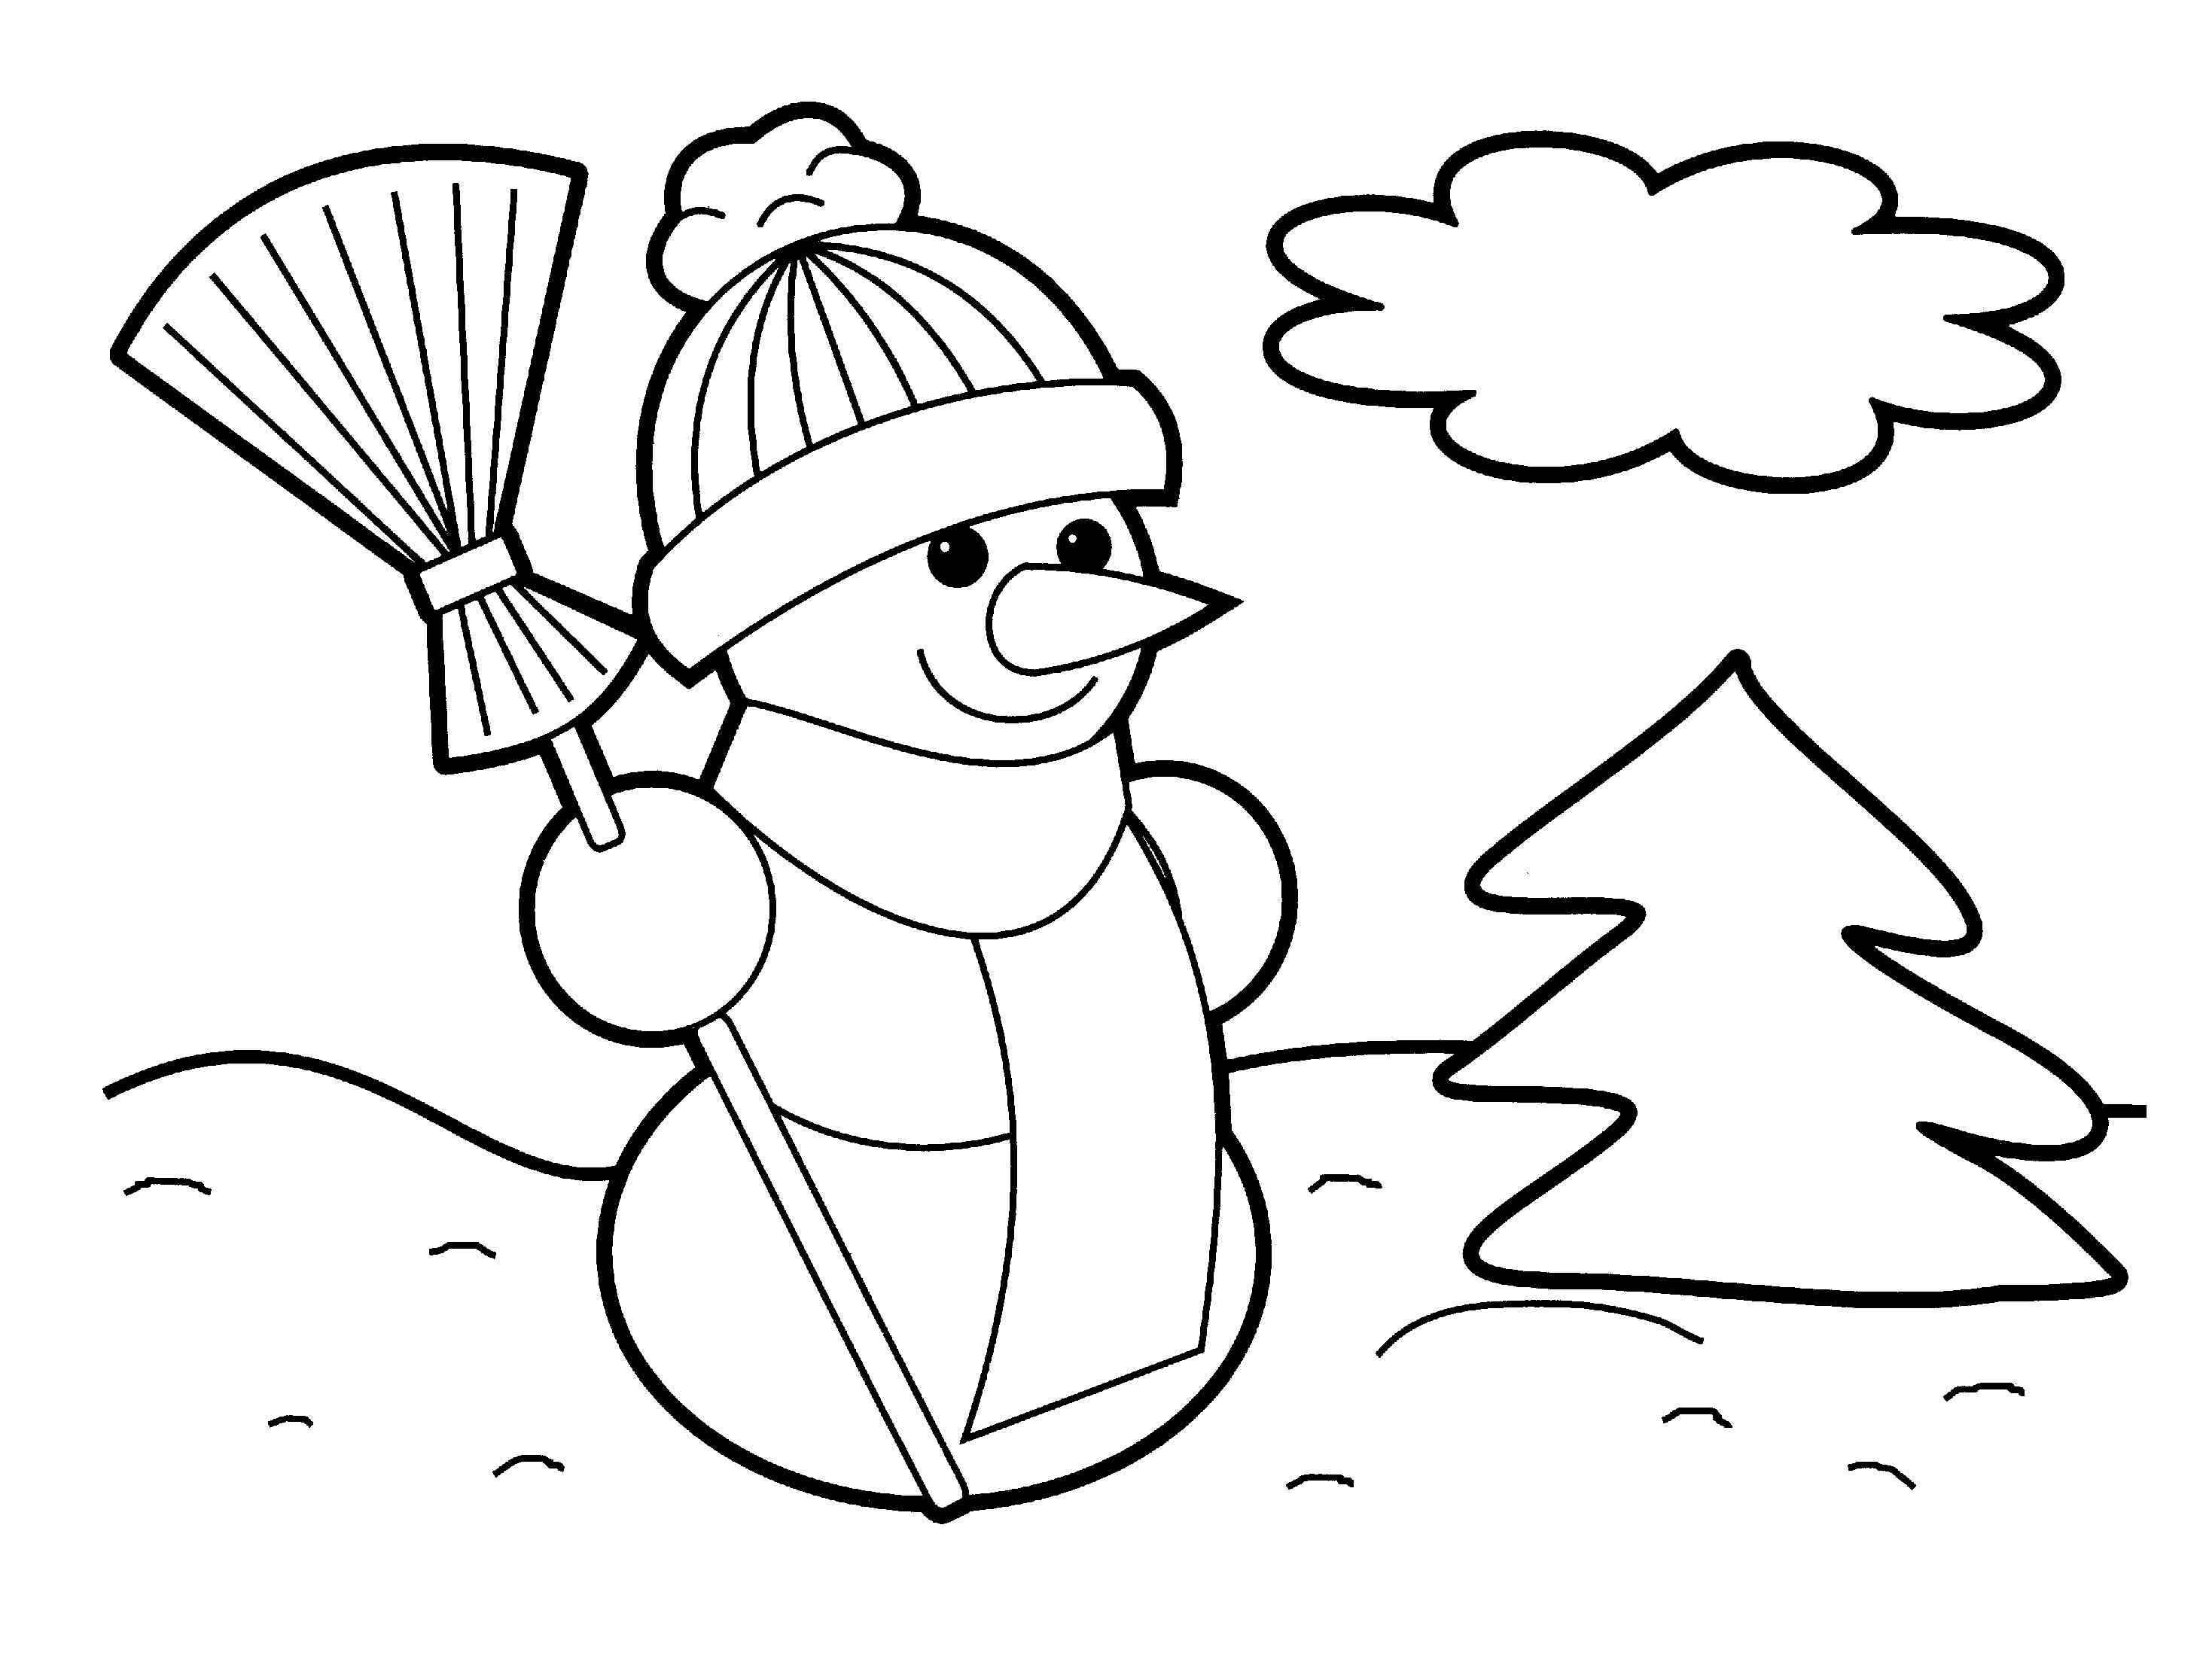 Clip Art Christmas Stocking Coloring Pages Pattern 1000 images about coloring on pinterest for kids christmas and parenting